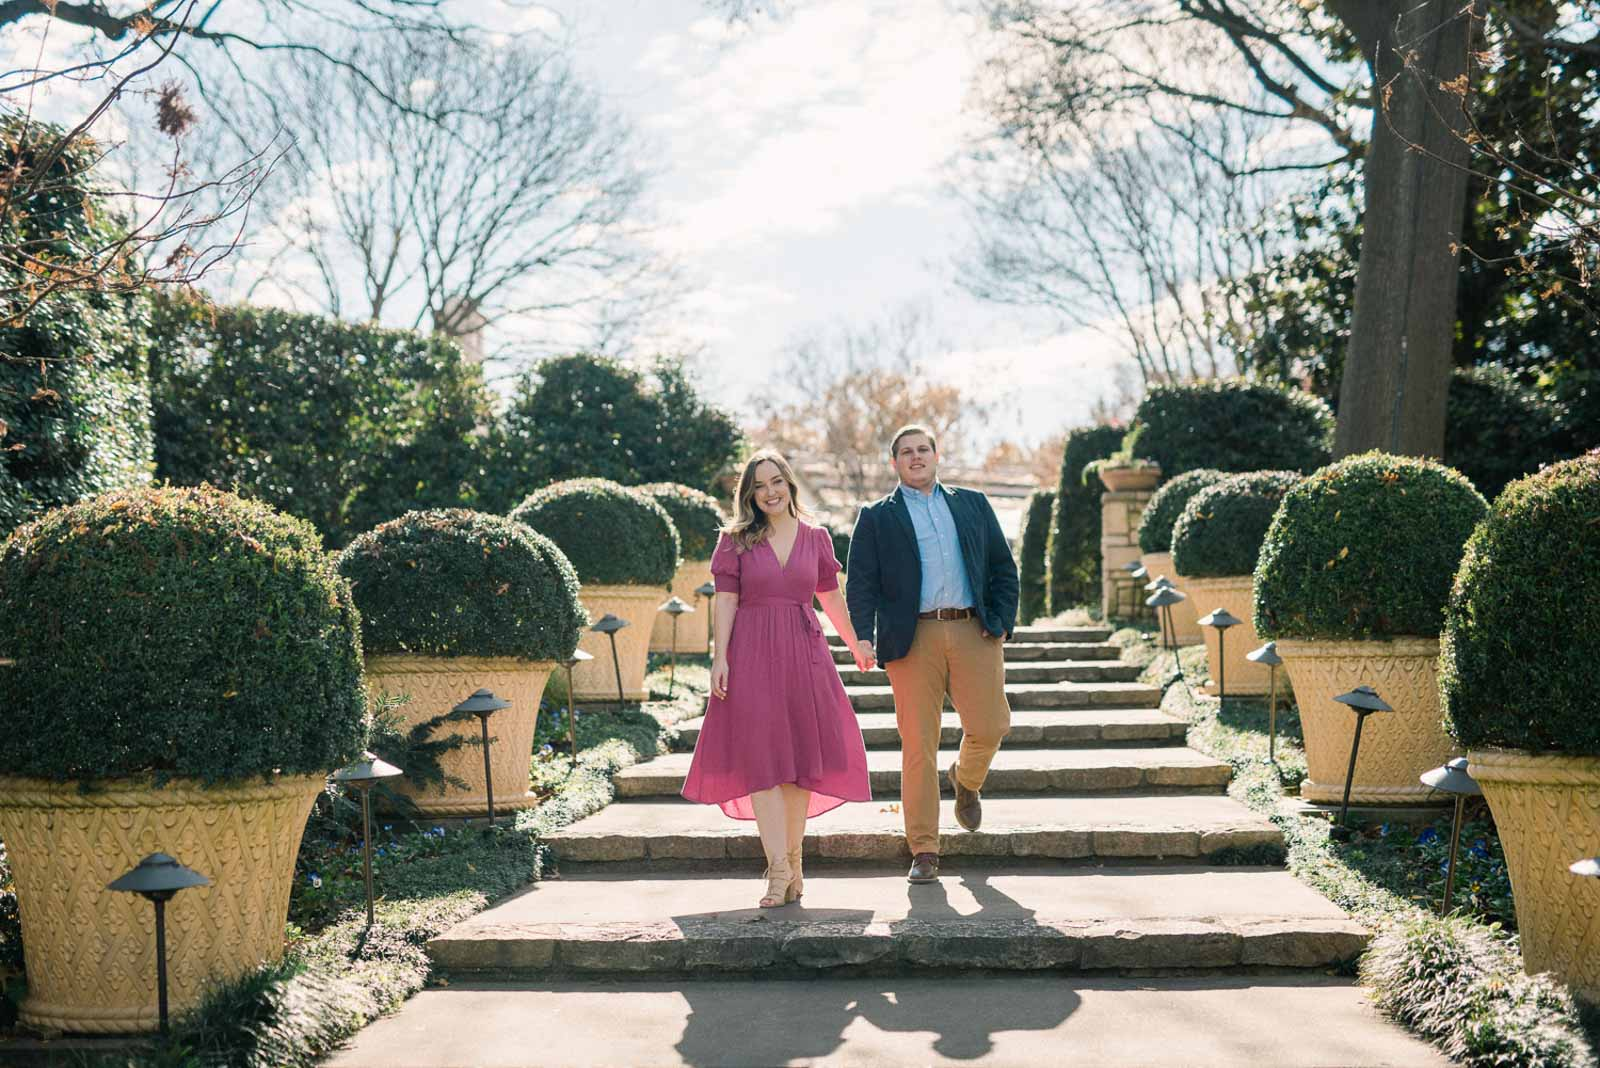 Dallas Arboretum Engagement-JenSymes-7.jpg